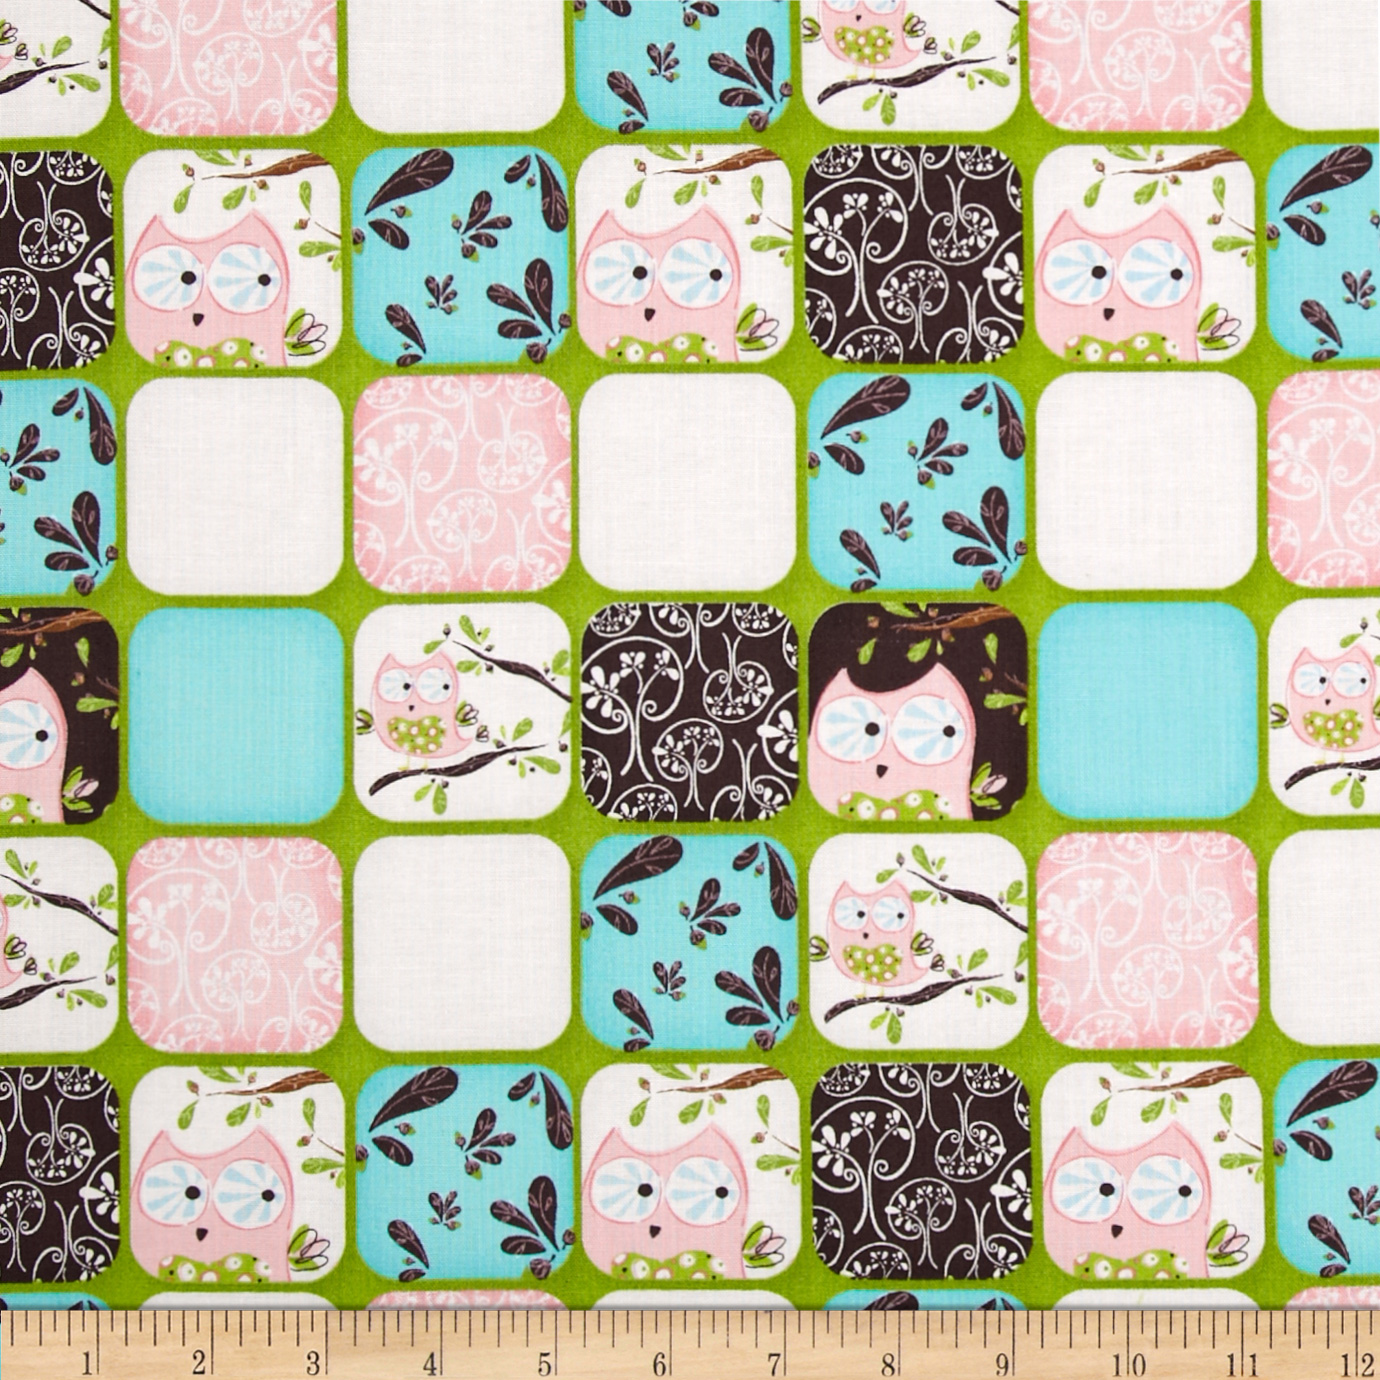 Whoo's Cute Cute Collage Green Fabric